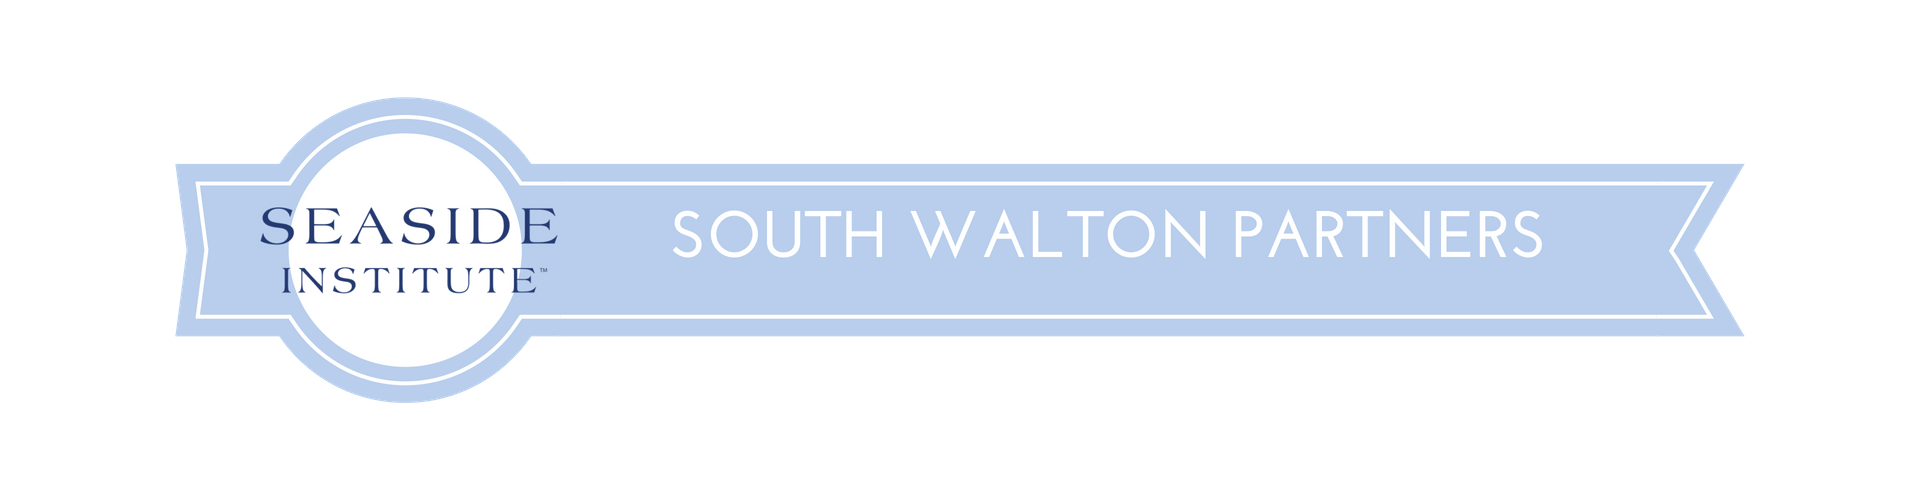 South Walton Partner Logo.png